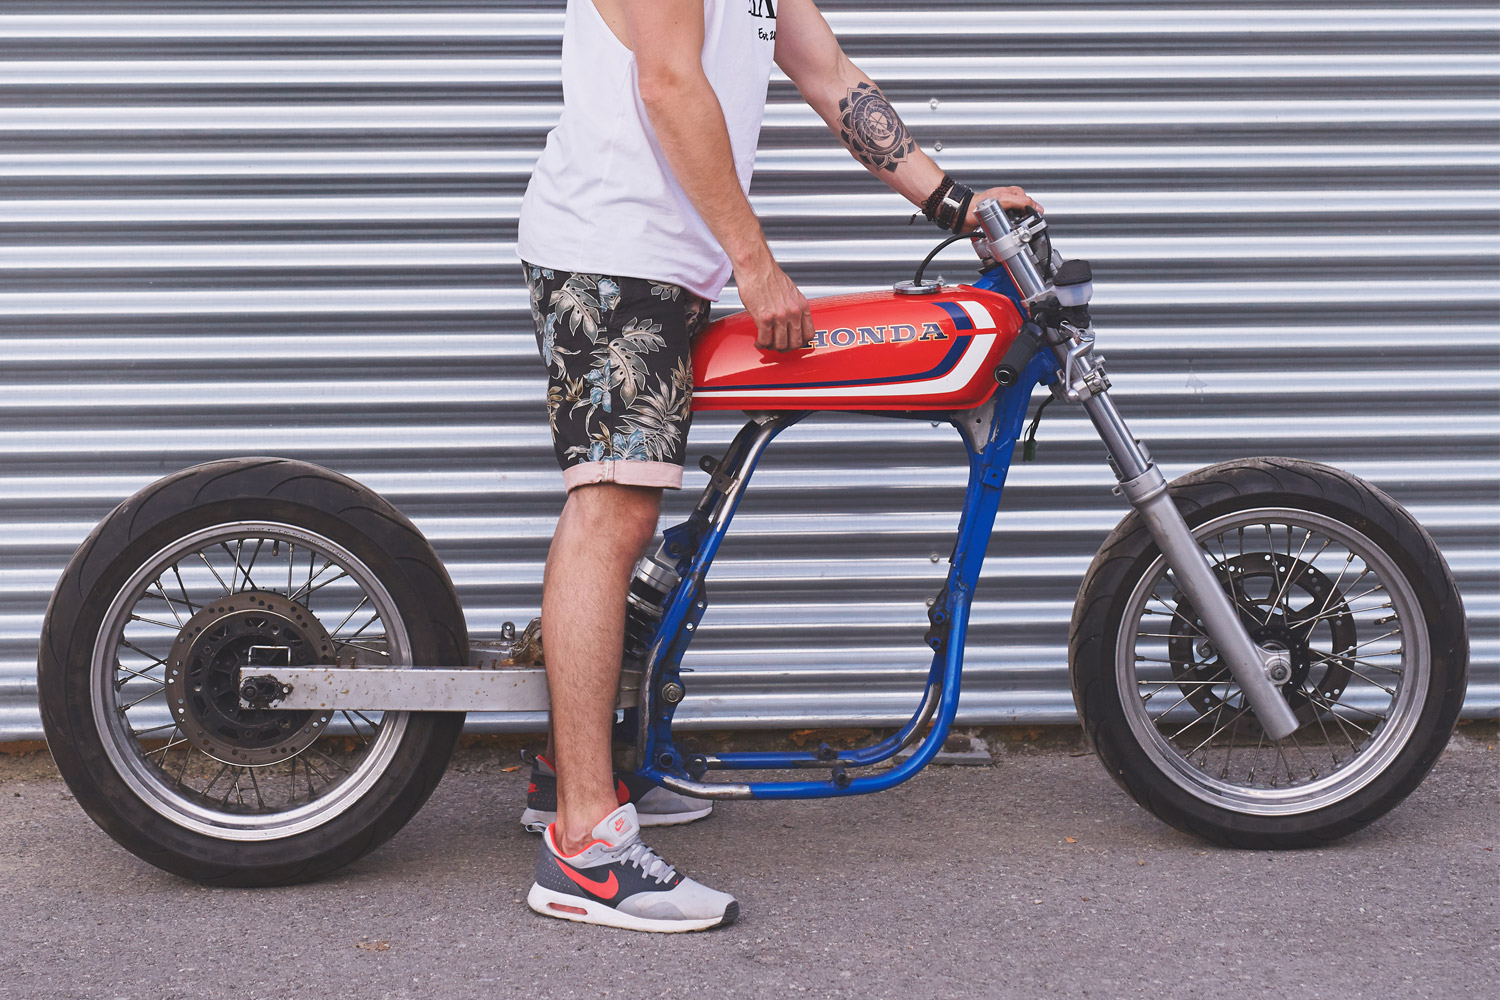 how to turn a dirt bike into a cafe racer - part 1 | highsnobiety